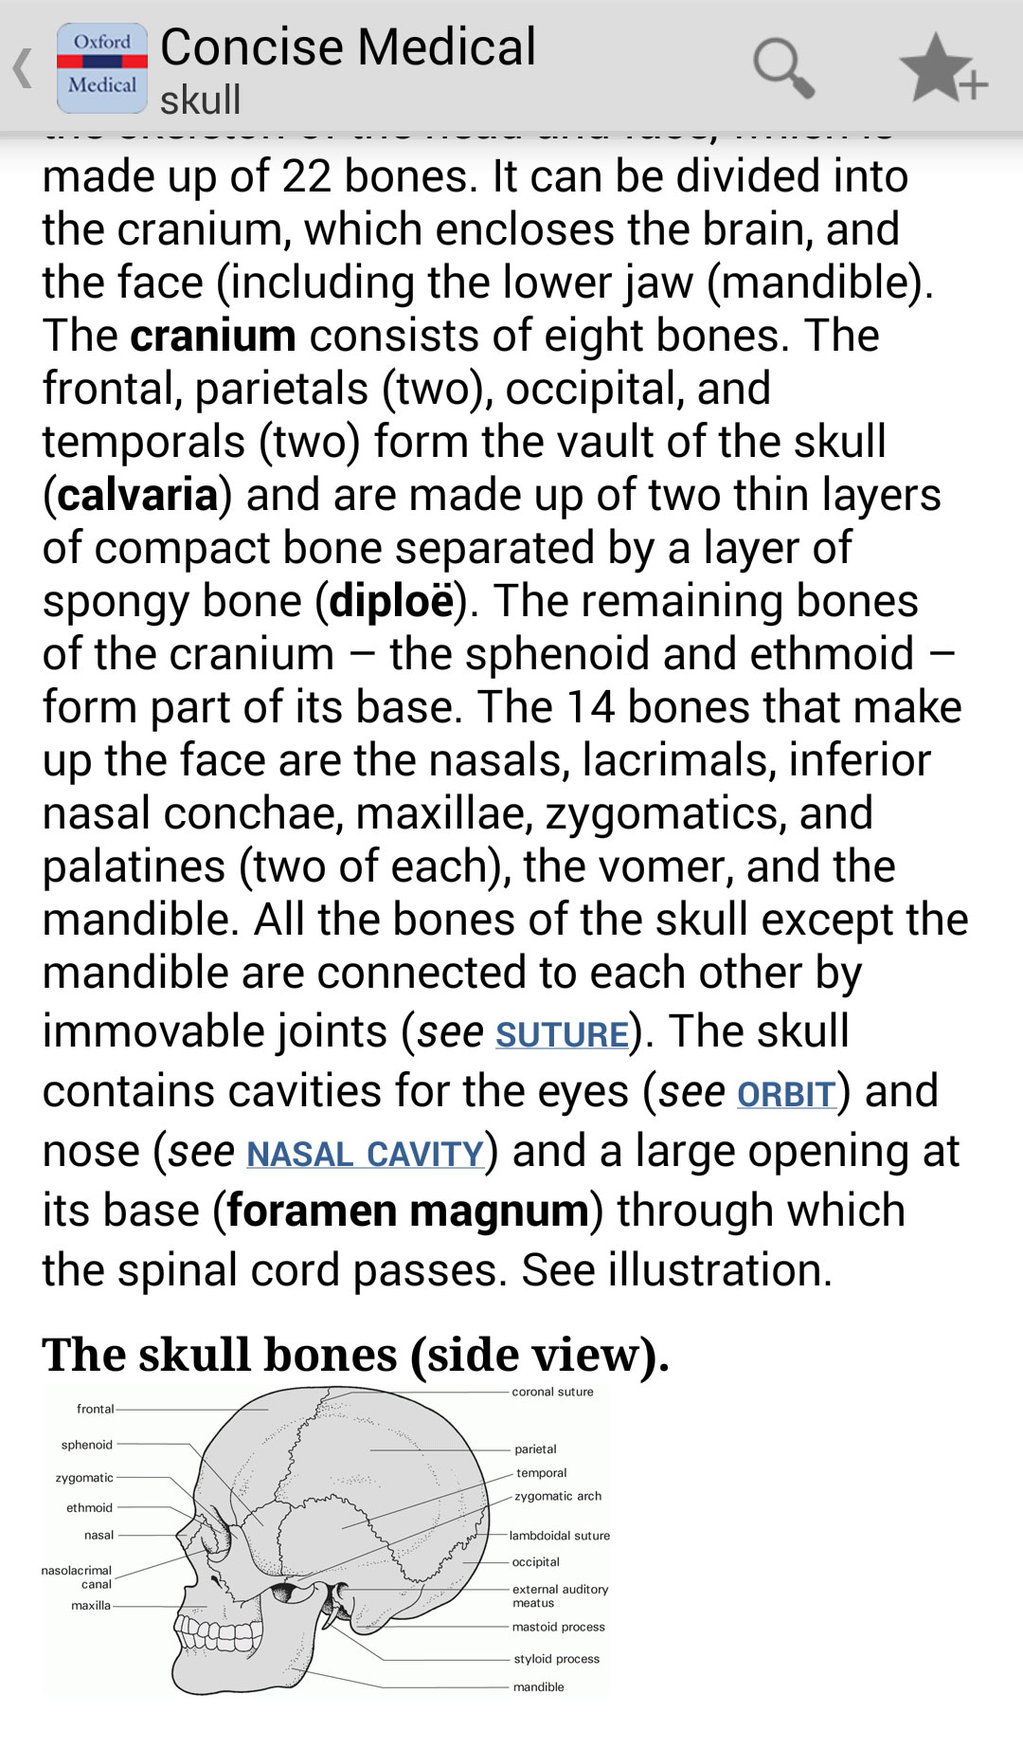 Oxford Concise Medical Dictionary Screenshot 5